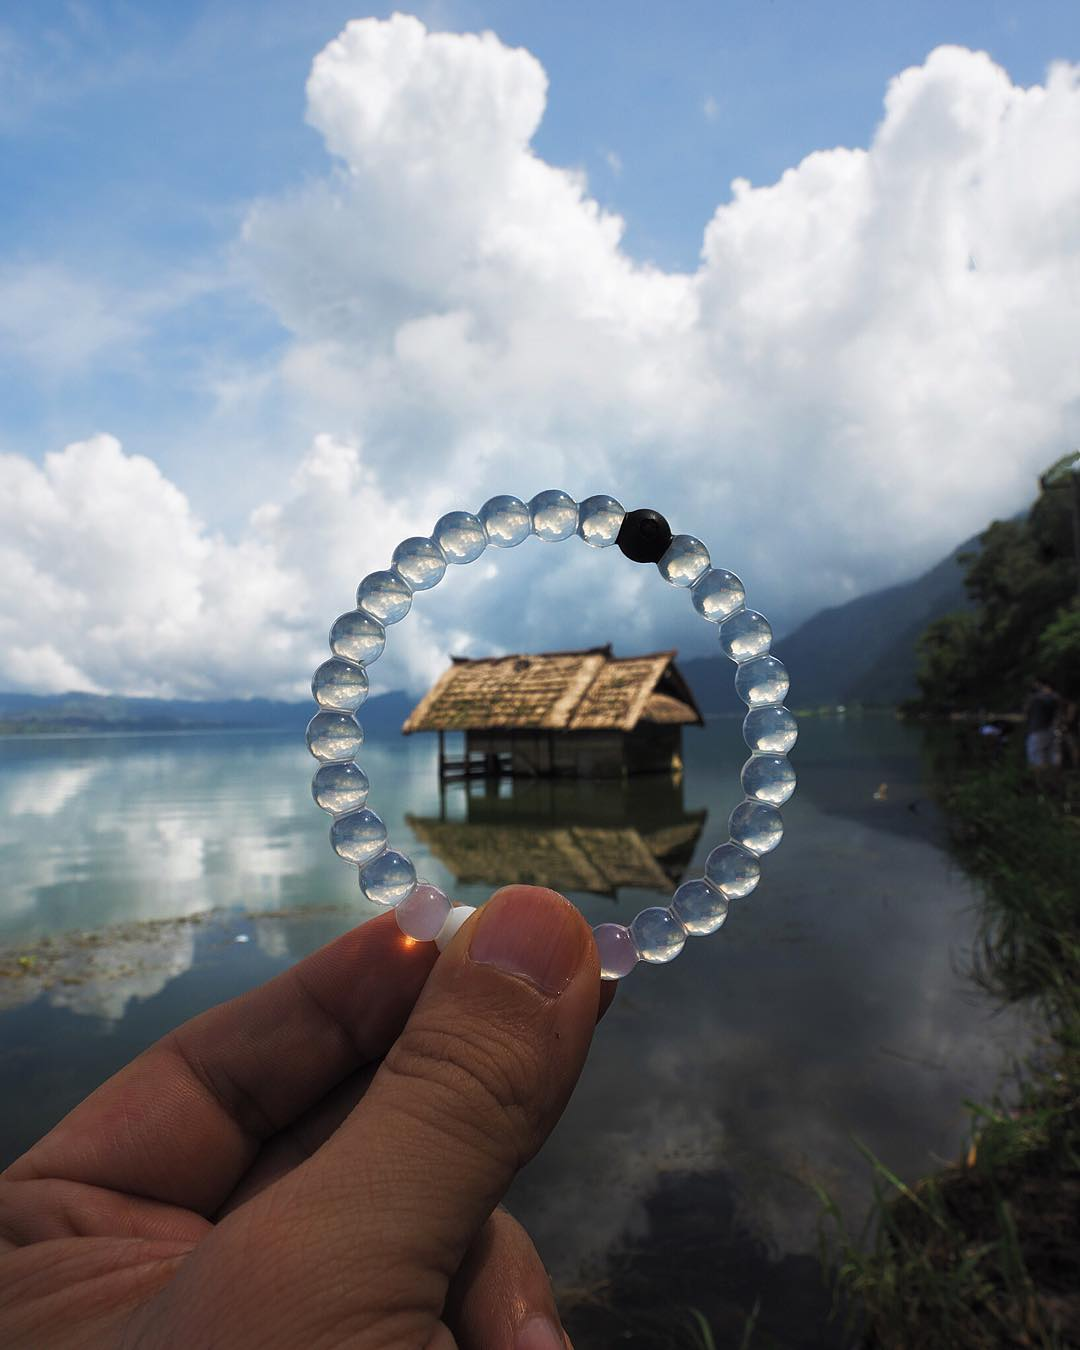 Island life #livelokai  Thanks @ilhan1077